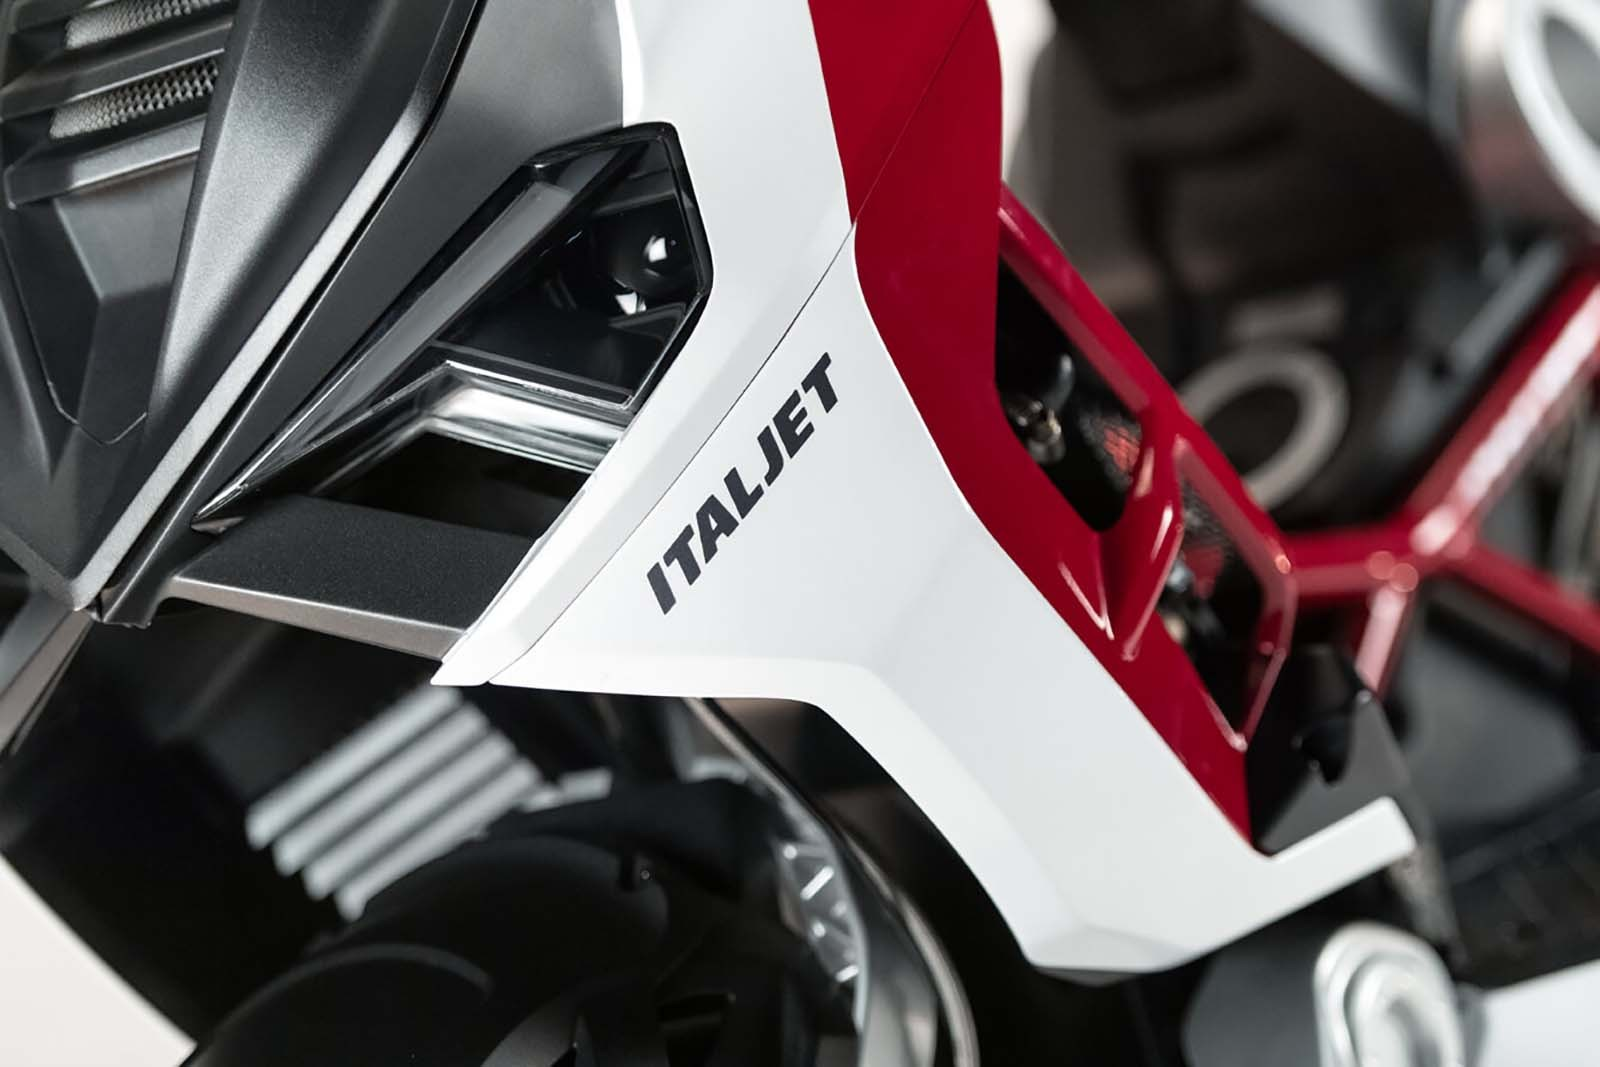 2019-Italjet-Dragster-scooter-13